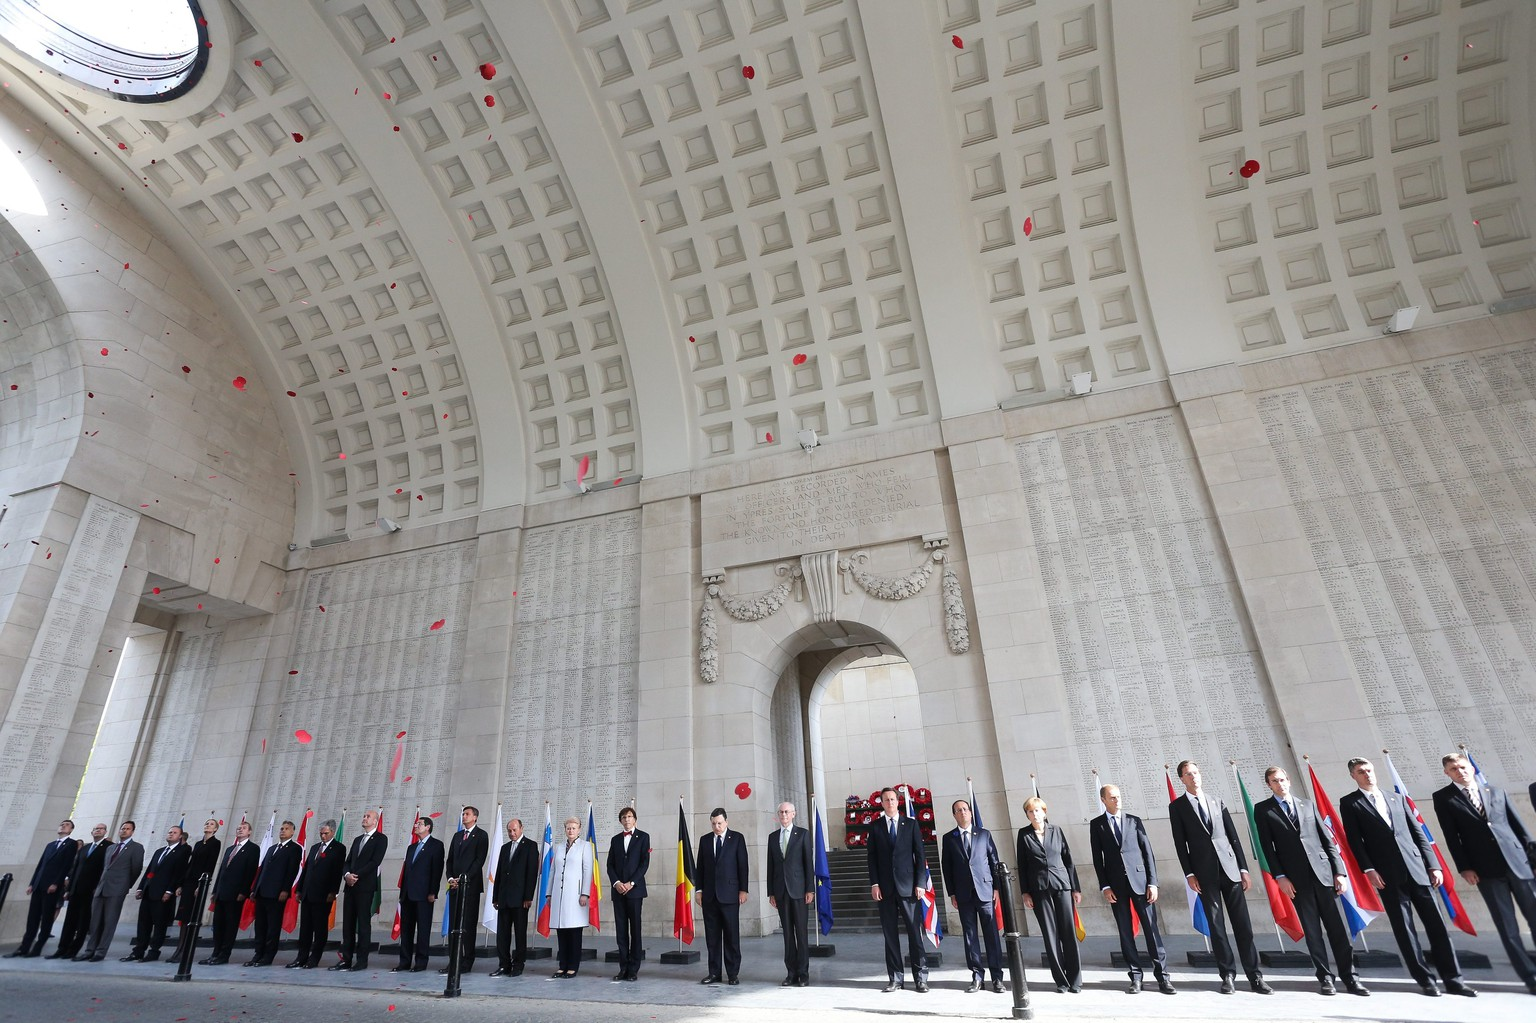 epa04283543 European heads of states attend a ceremony marking the centenary of the outbreak of World War I, in Ypres, Belgium, 26 June 2014. During the war, hundreds of thousands of soldiers and civilians from all over the world lost their lives around the Belgian town of Ypres. To mark the occasion, the European Union is donating a symbolic bench with bronzed copper plates reading the word 'Peace' in the EU's 24 official languages.  EPA/JULIEN WARNAND